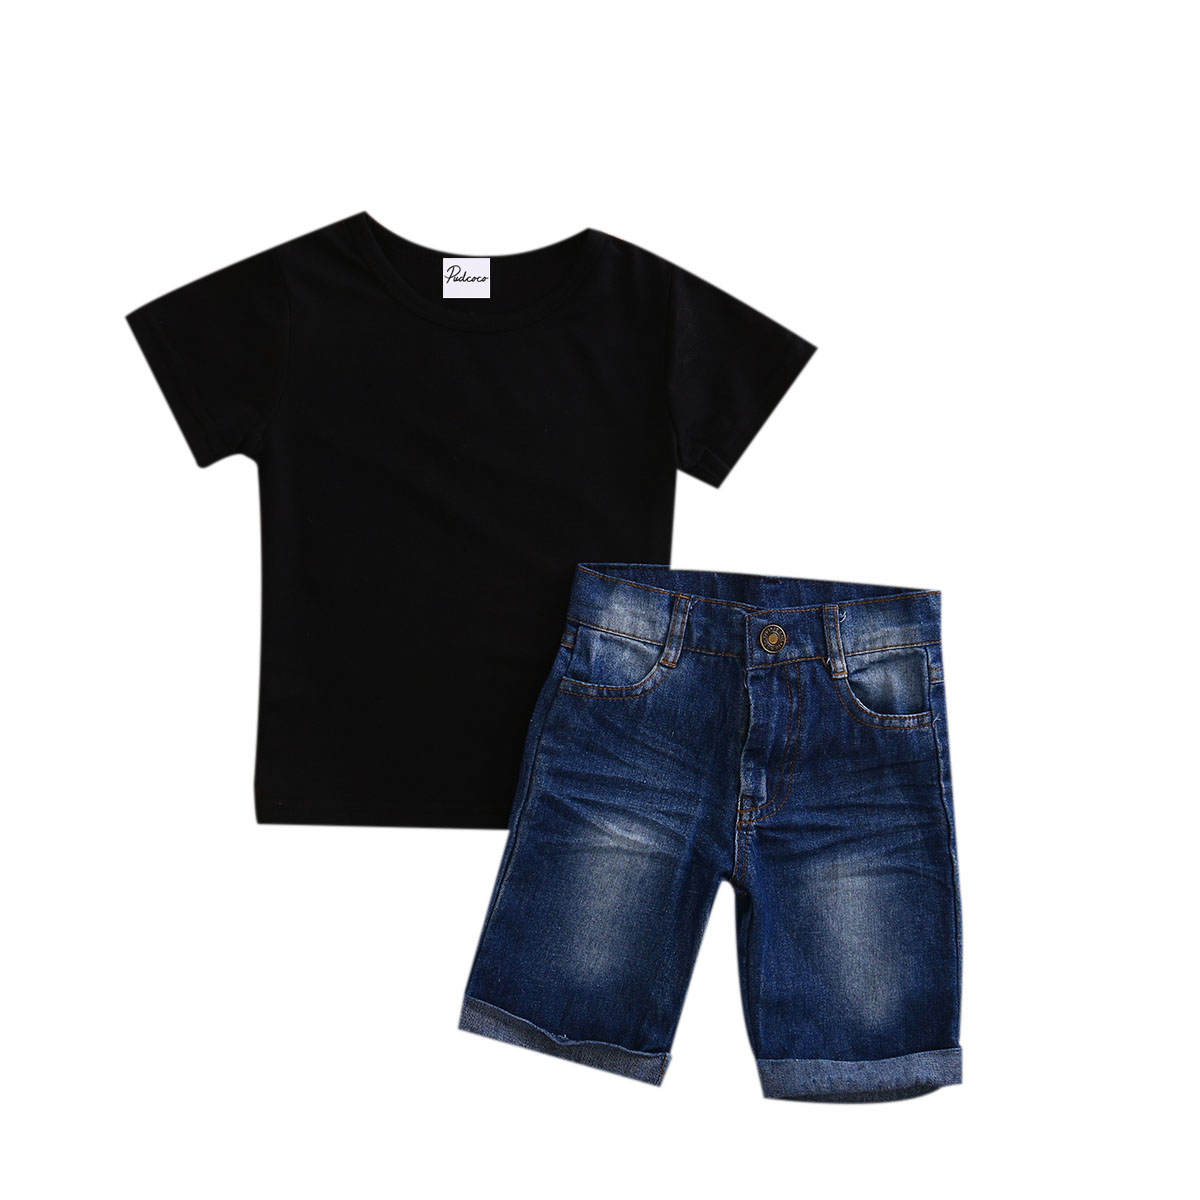 2PCS Toddler Kids Boy Clothes Set 2017 Summer Short Sleeve Cotton T-Shirt Tops+Denim Shorts Jean Outfits Children Clothing